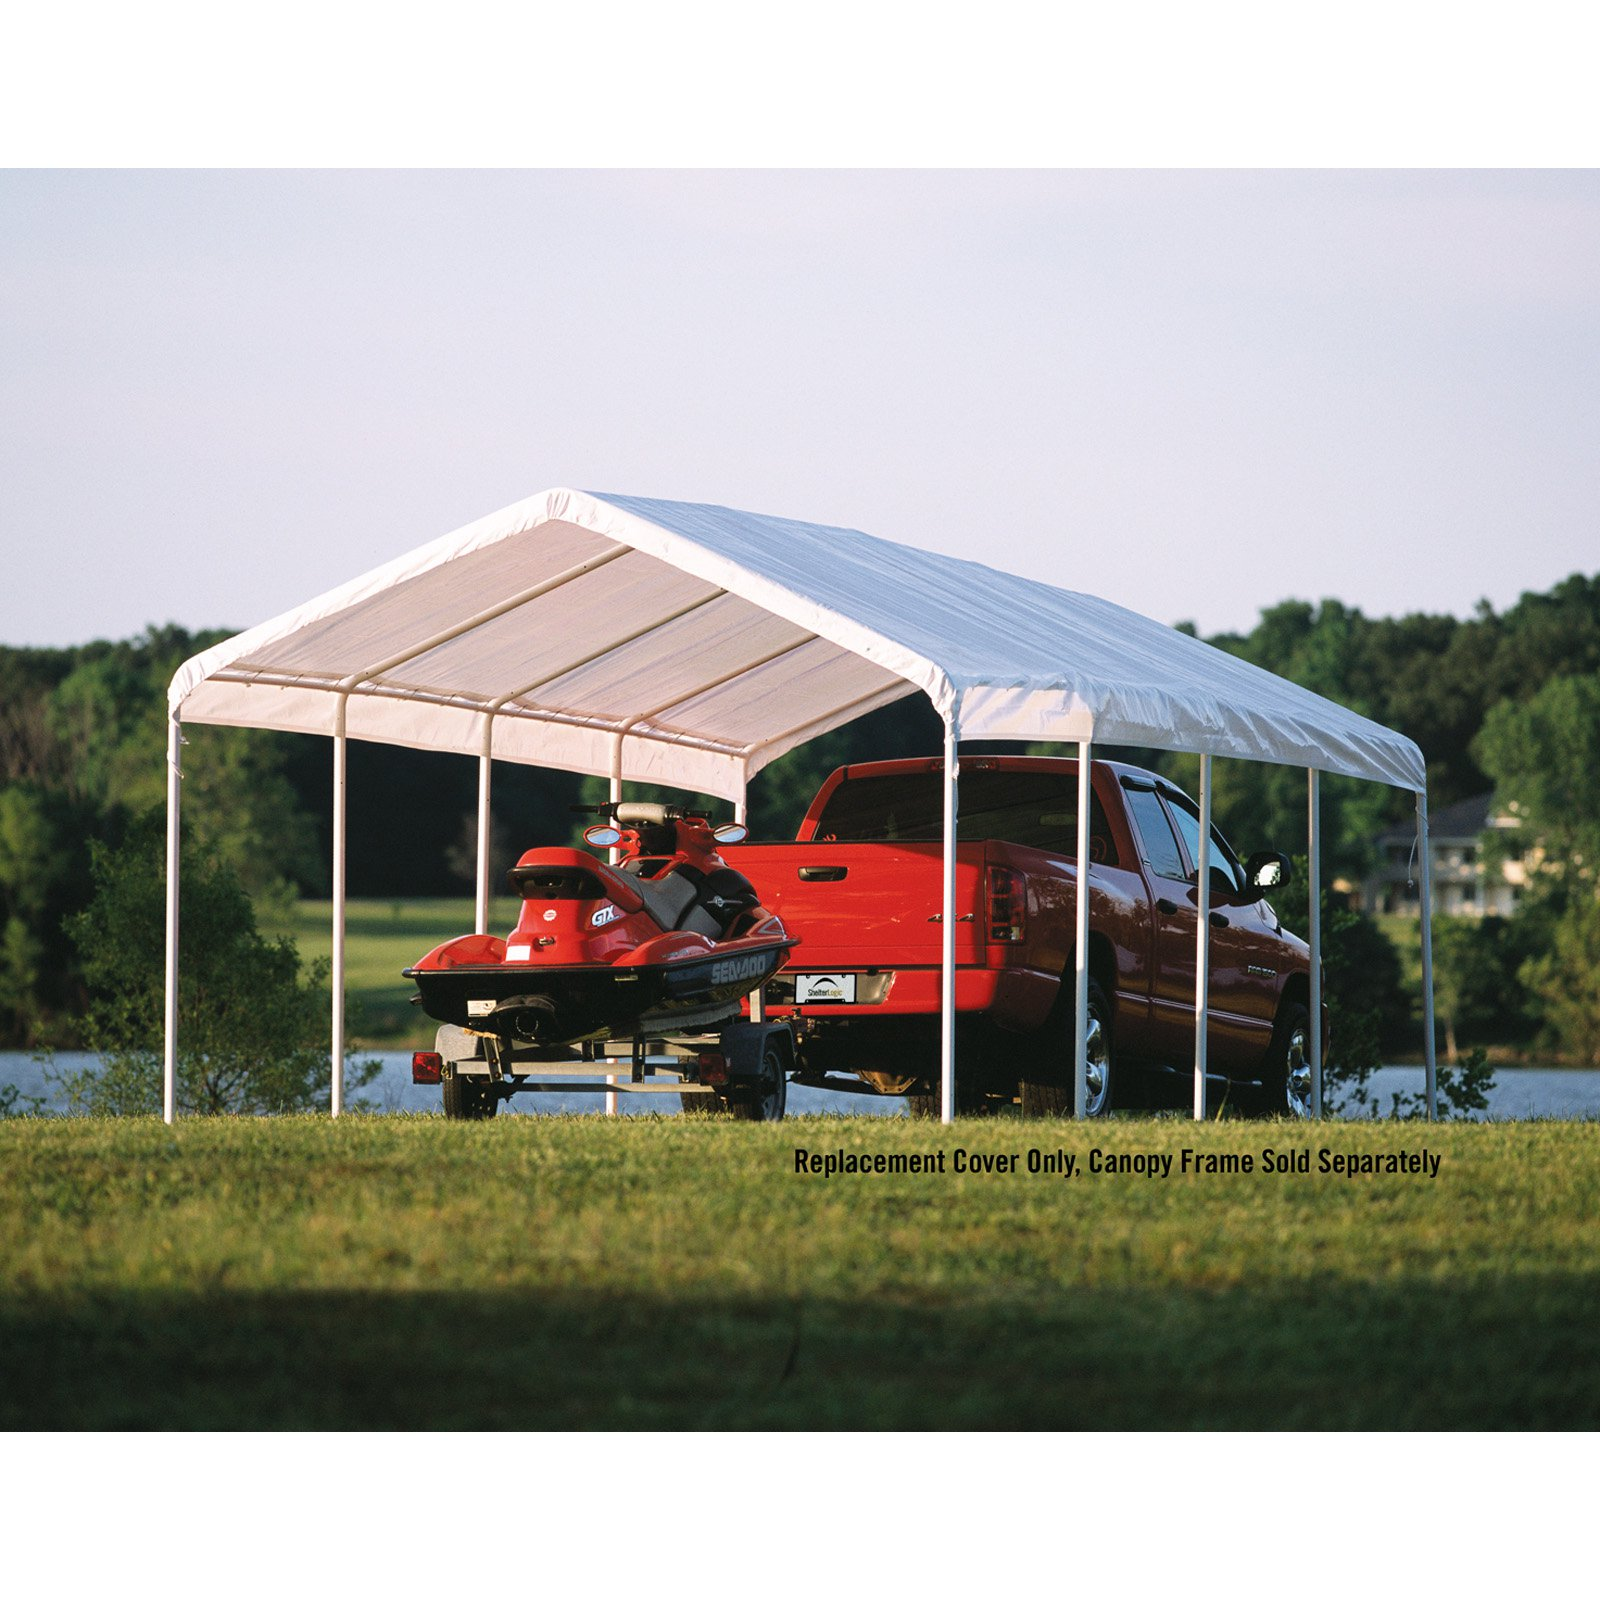 Shelterlogic 12 X 26 Ft Canopy Replacement Cover For 2 In Frame White Canopy Canopy Patio Canopy